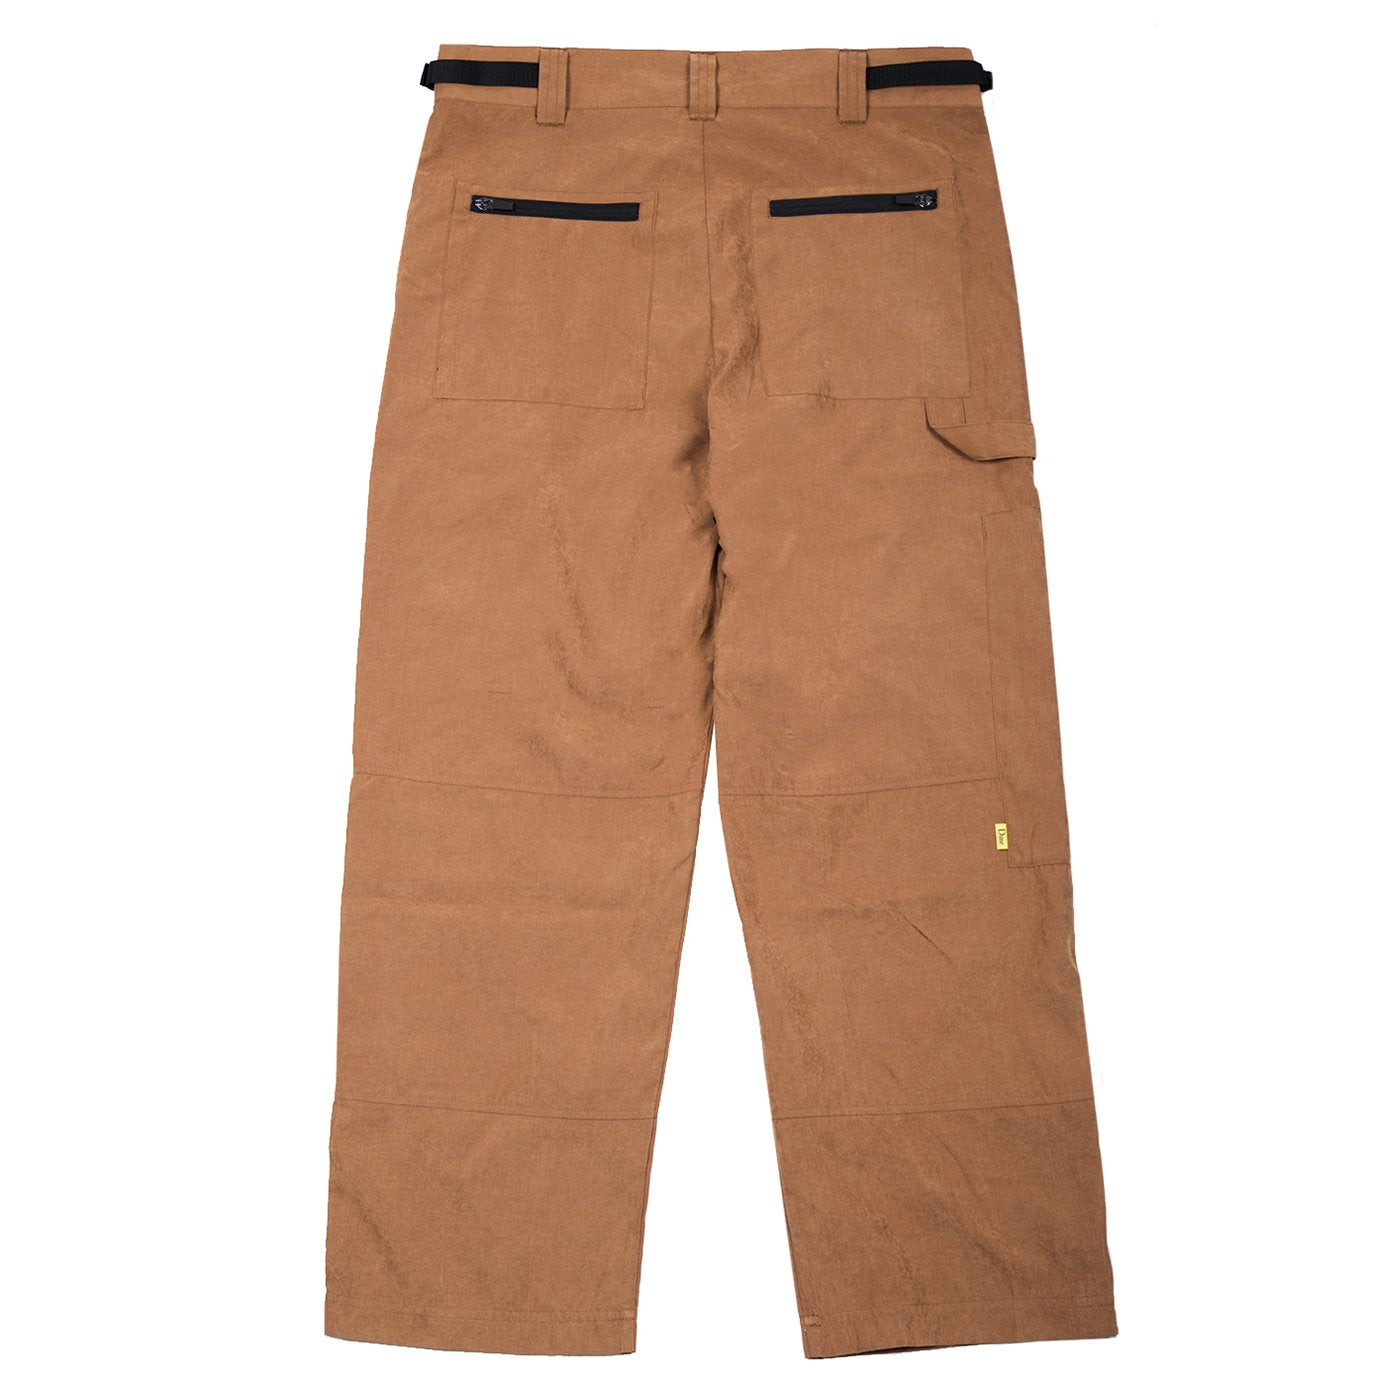 Dime Hiking Pants Product Photo #2